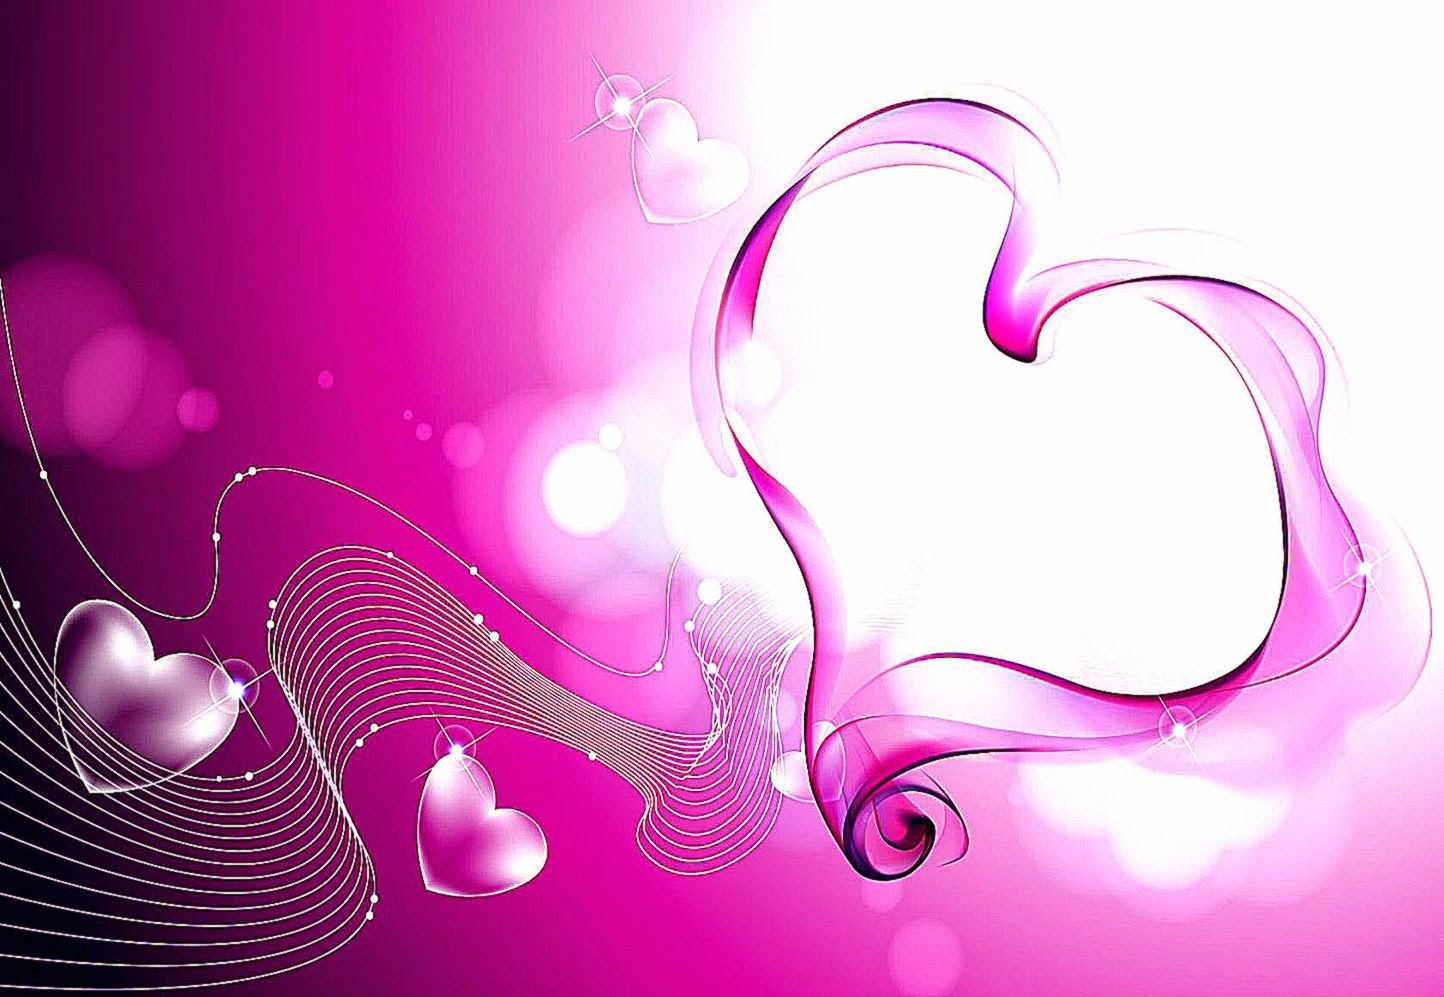 Pink Love Hearts Smoke Wallpapers HD Wallpapers 1444x997